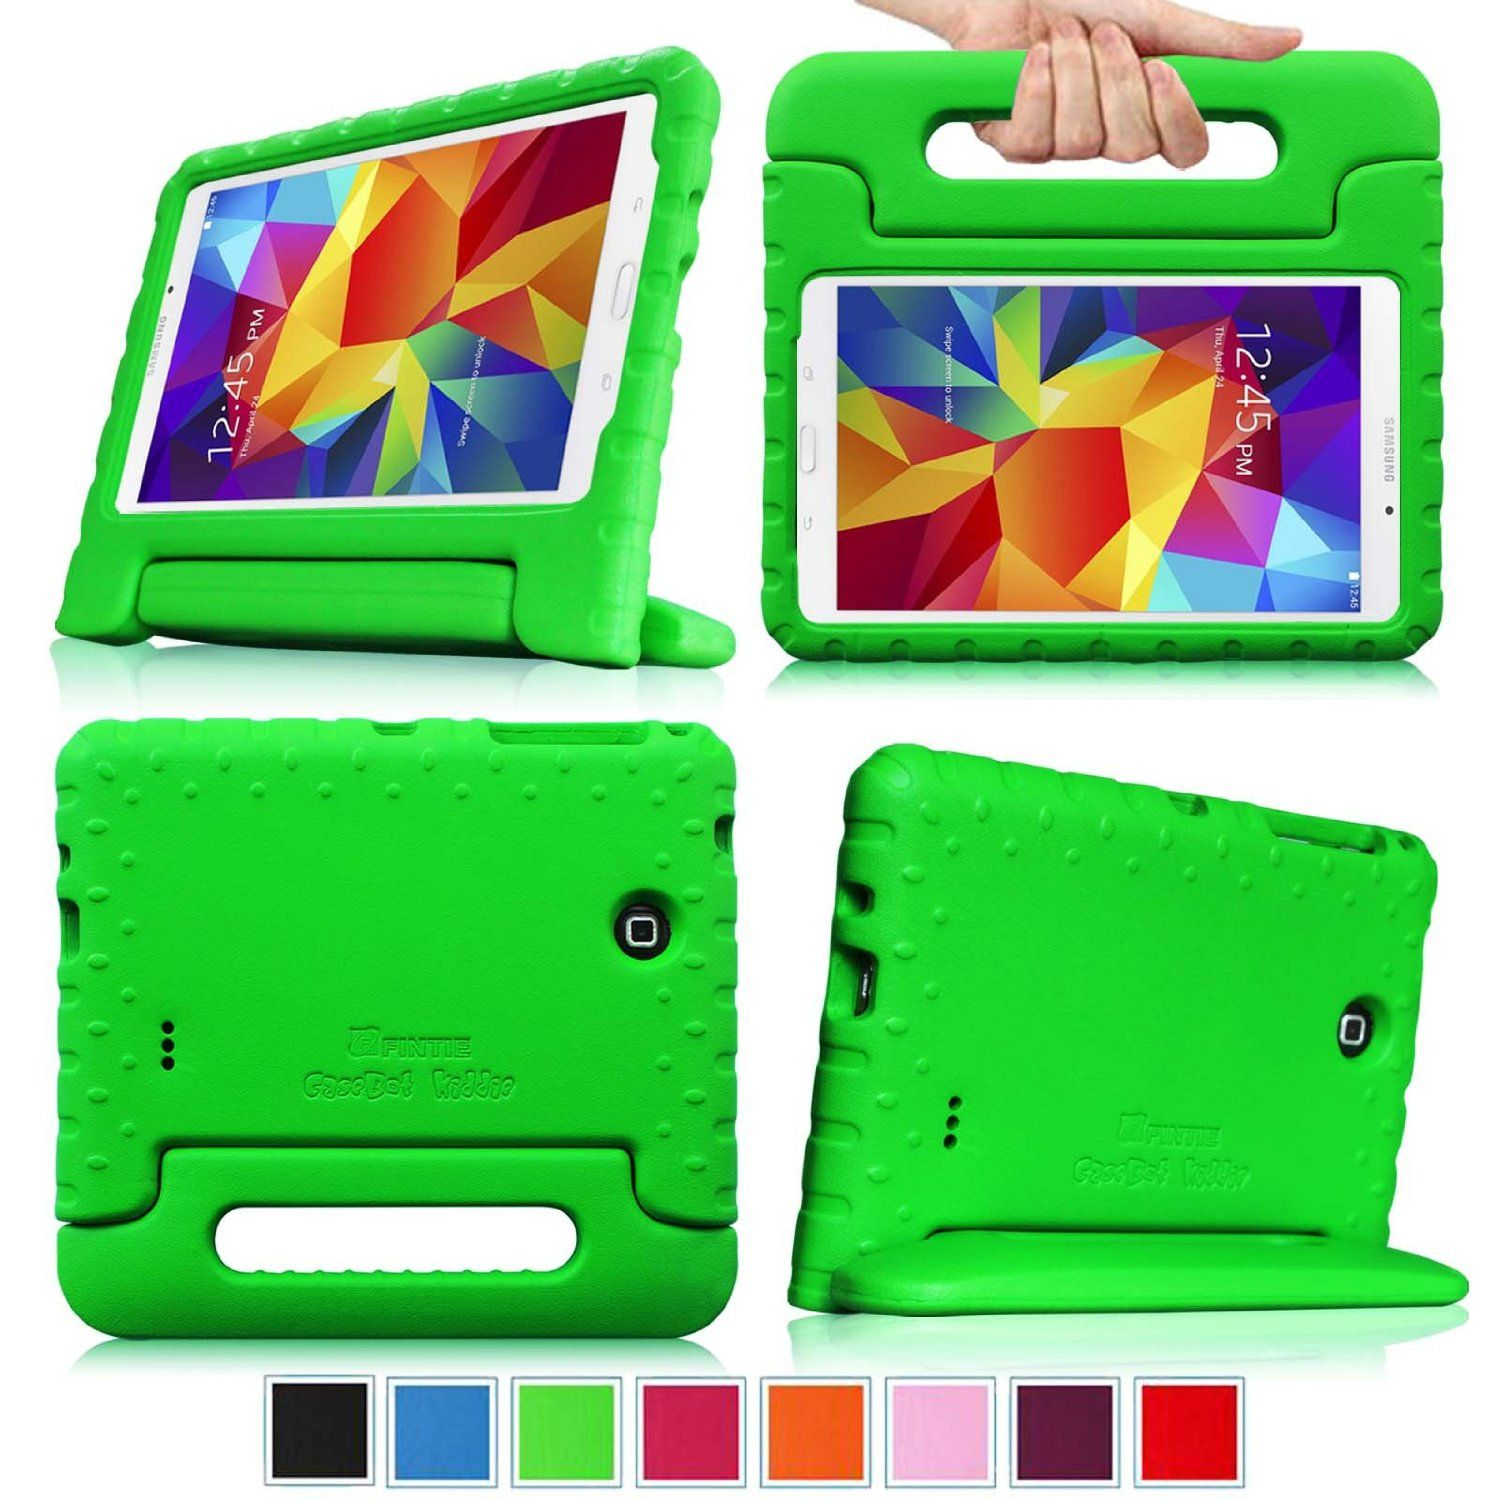 huge discount 06e2f 2ca8c Toddler proof case for the Samsung Galaxy Tab 4 7 inch tablet ...